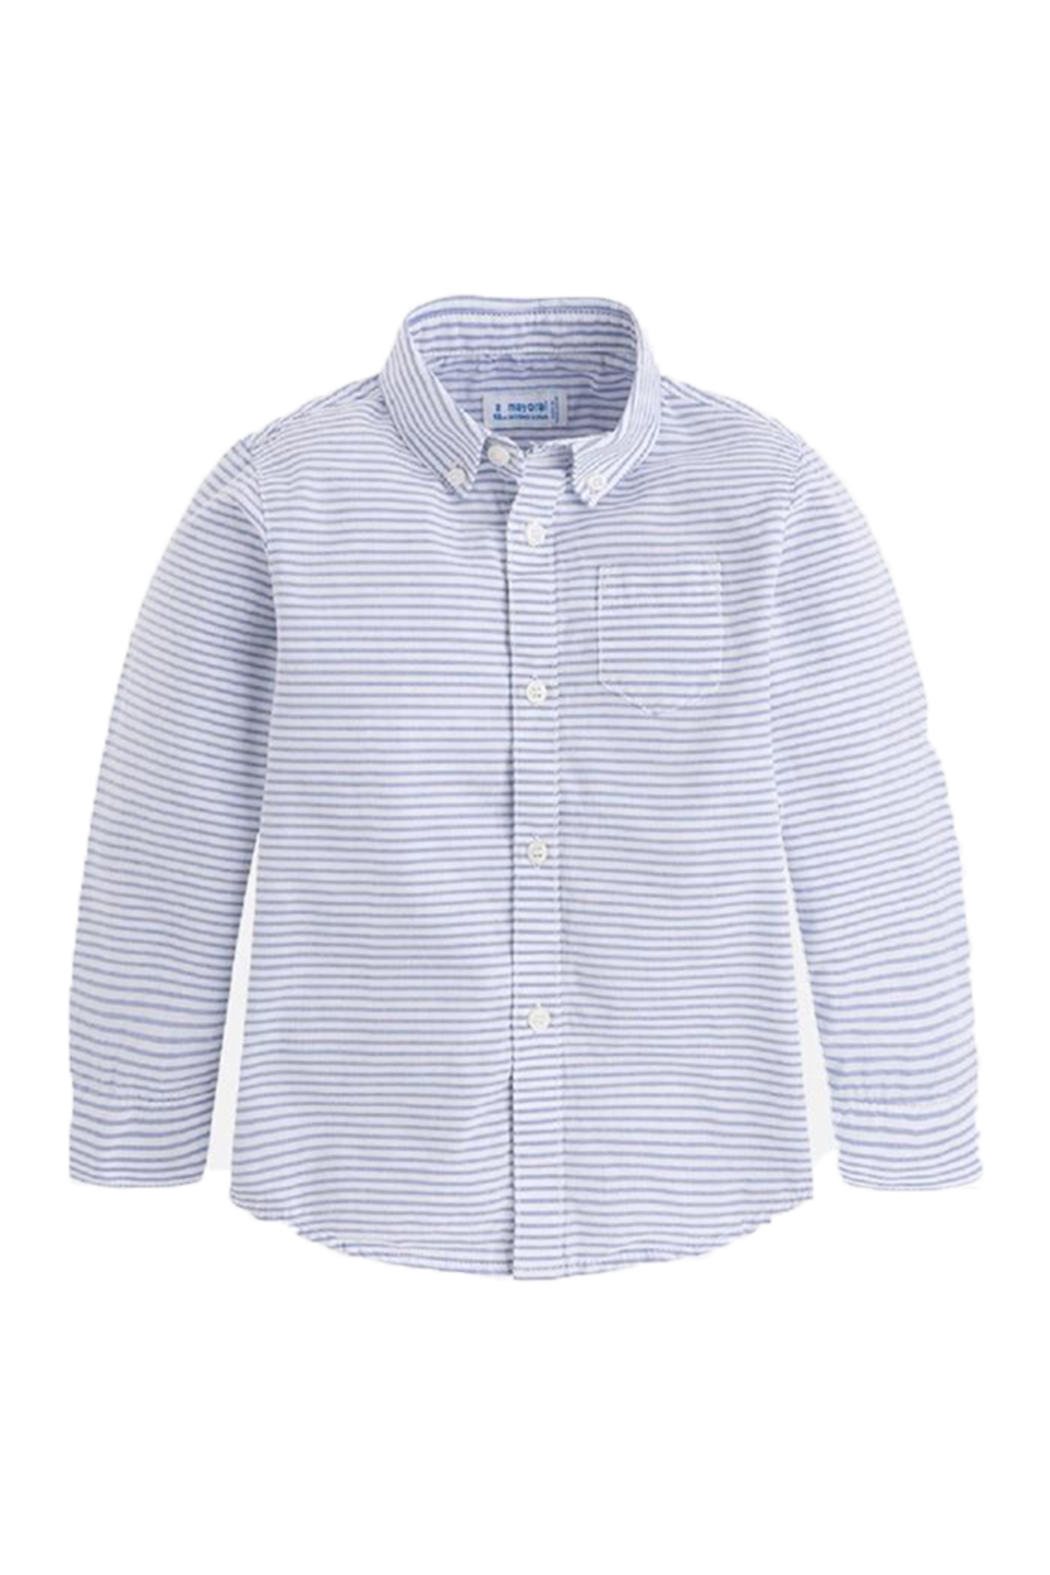 Mayoral L/s Striped Shirt - Main Image